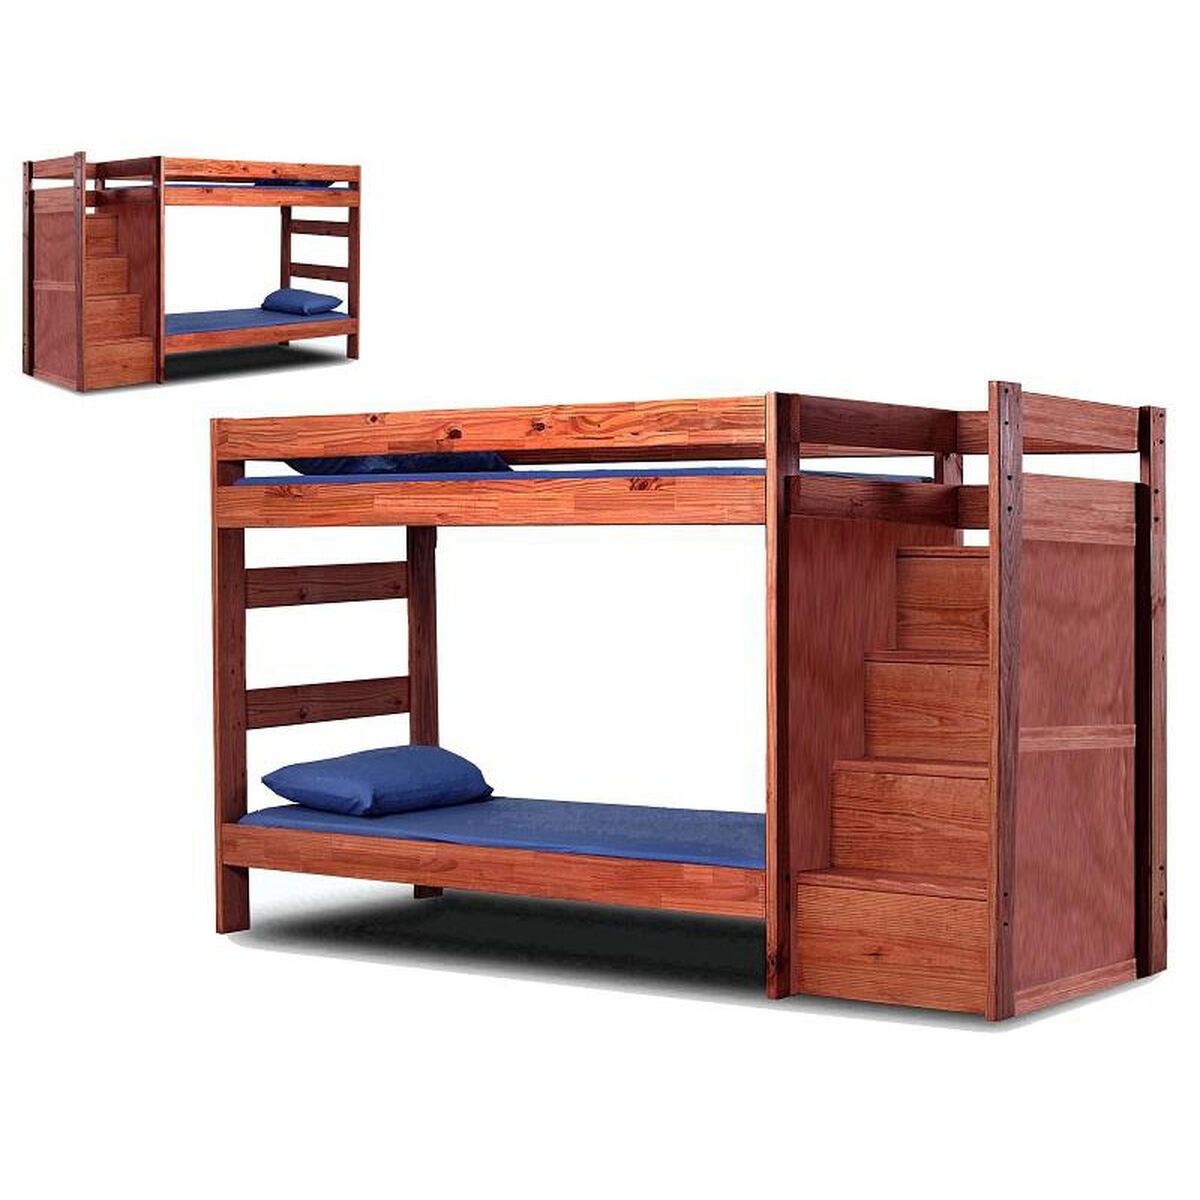 Chelsea Home Furniture Rustic Style Solid Pine Staircase Bunk Bed Twin Over Twin Mahogany